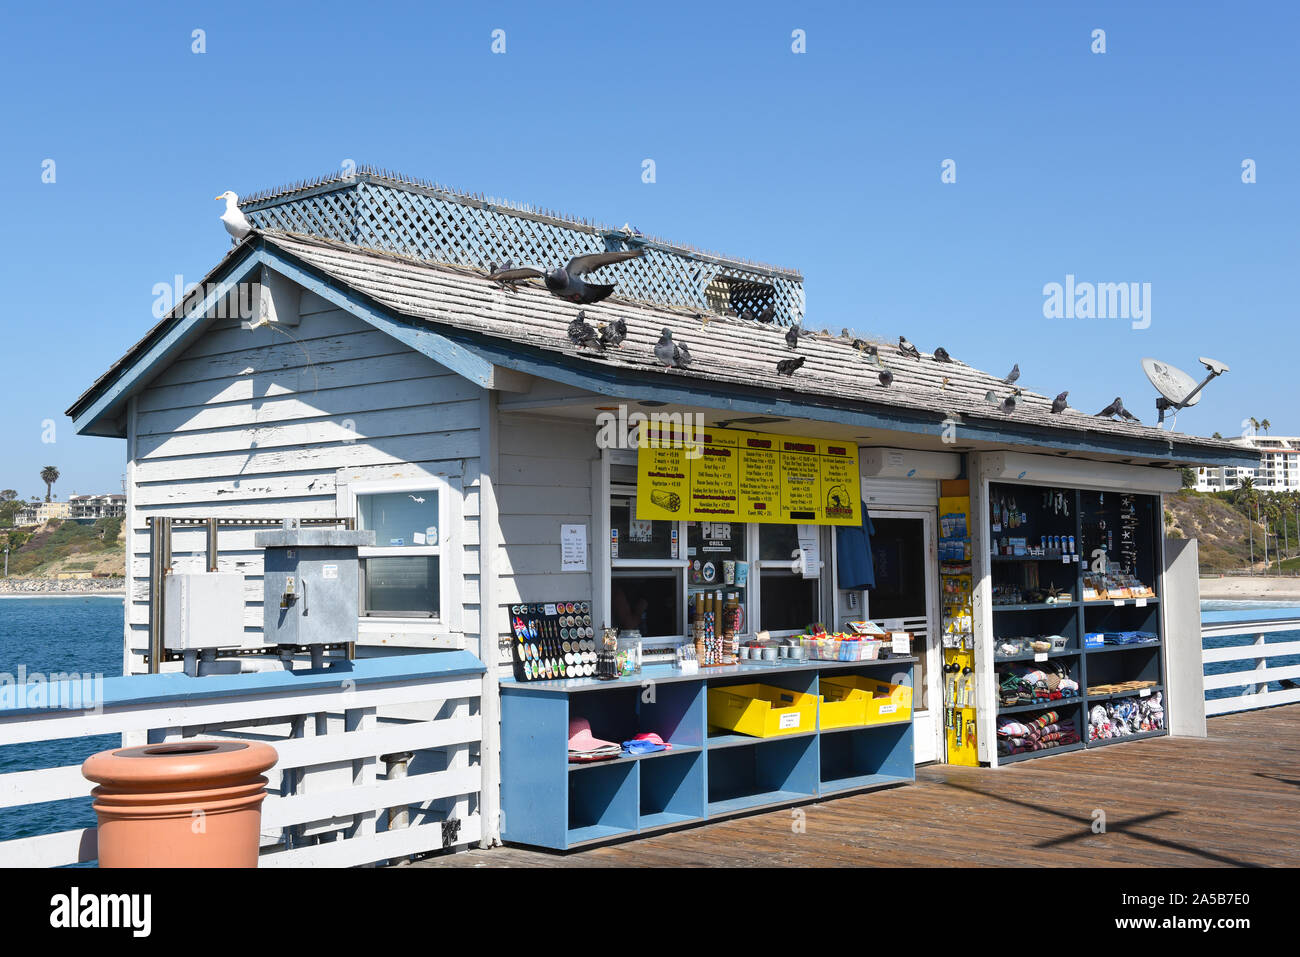 SAN CLEMENTE, CALIFORNIA - 18 OCT 2019: The Pier Grill, a snack shack and souvenir store on the San Clemente Pier. Stock Photo